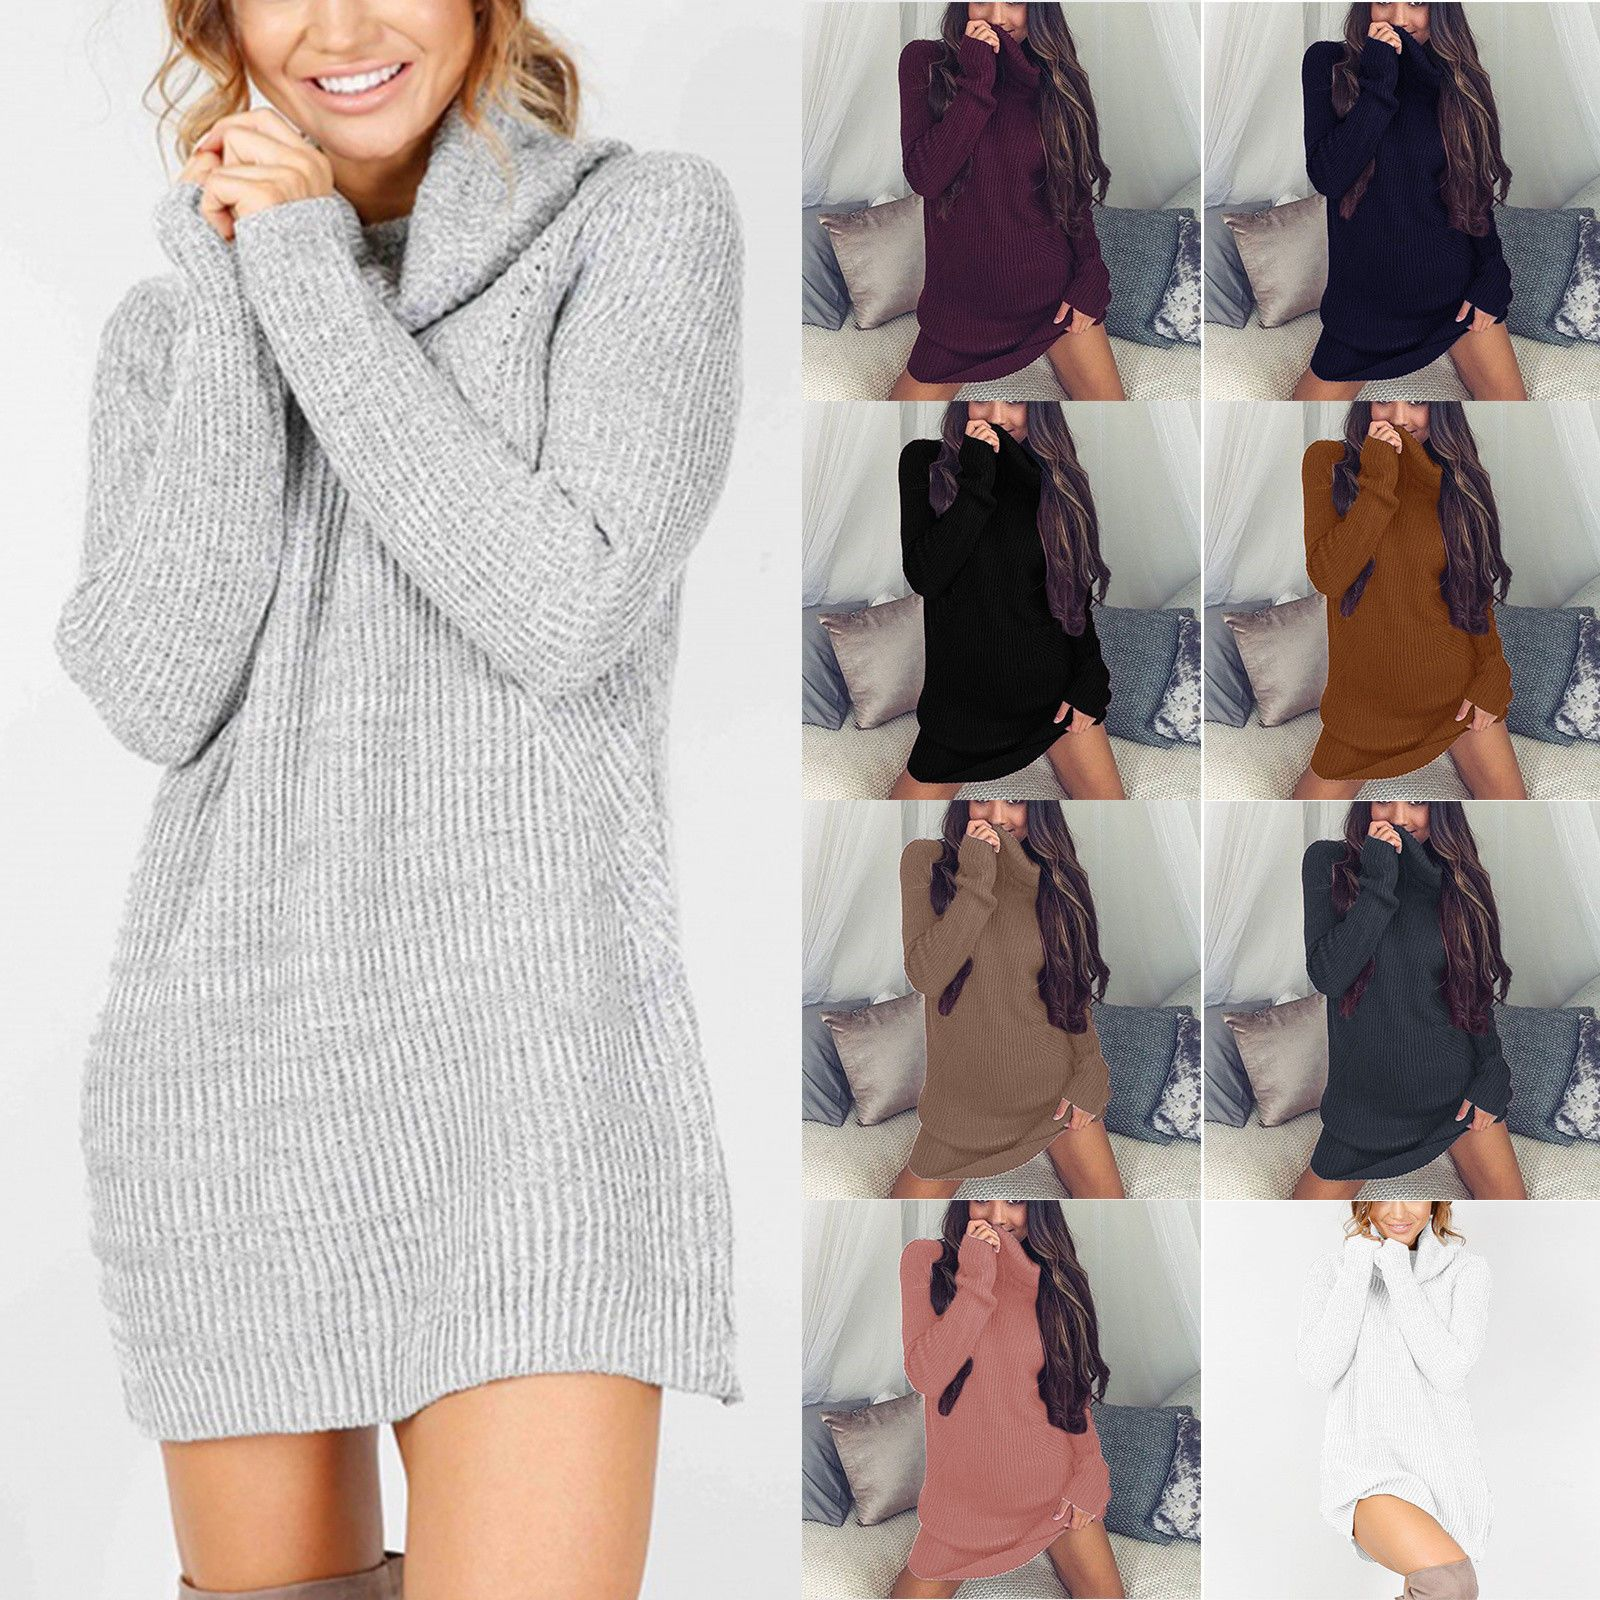 DE Damen Winter Rollkragen Pullover Pullikleid Strickkleid